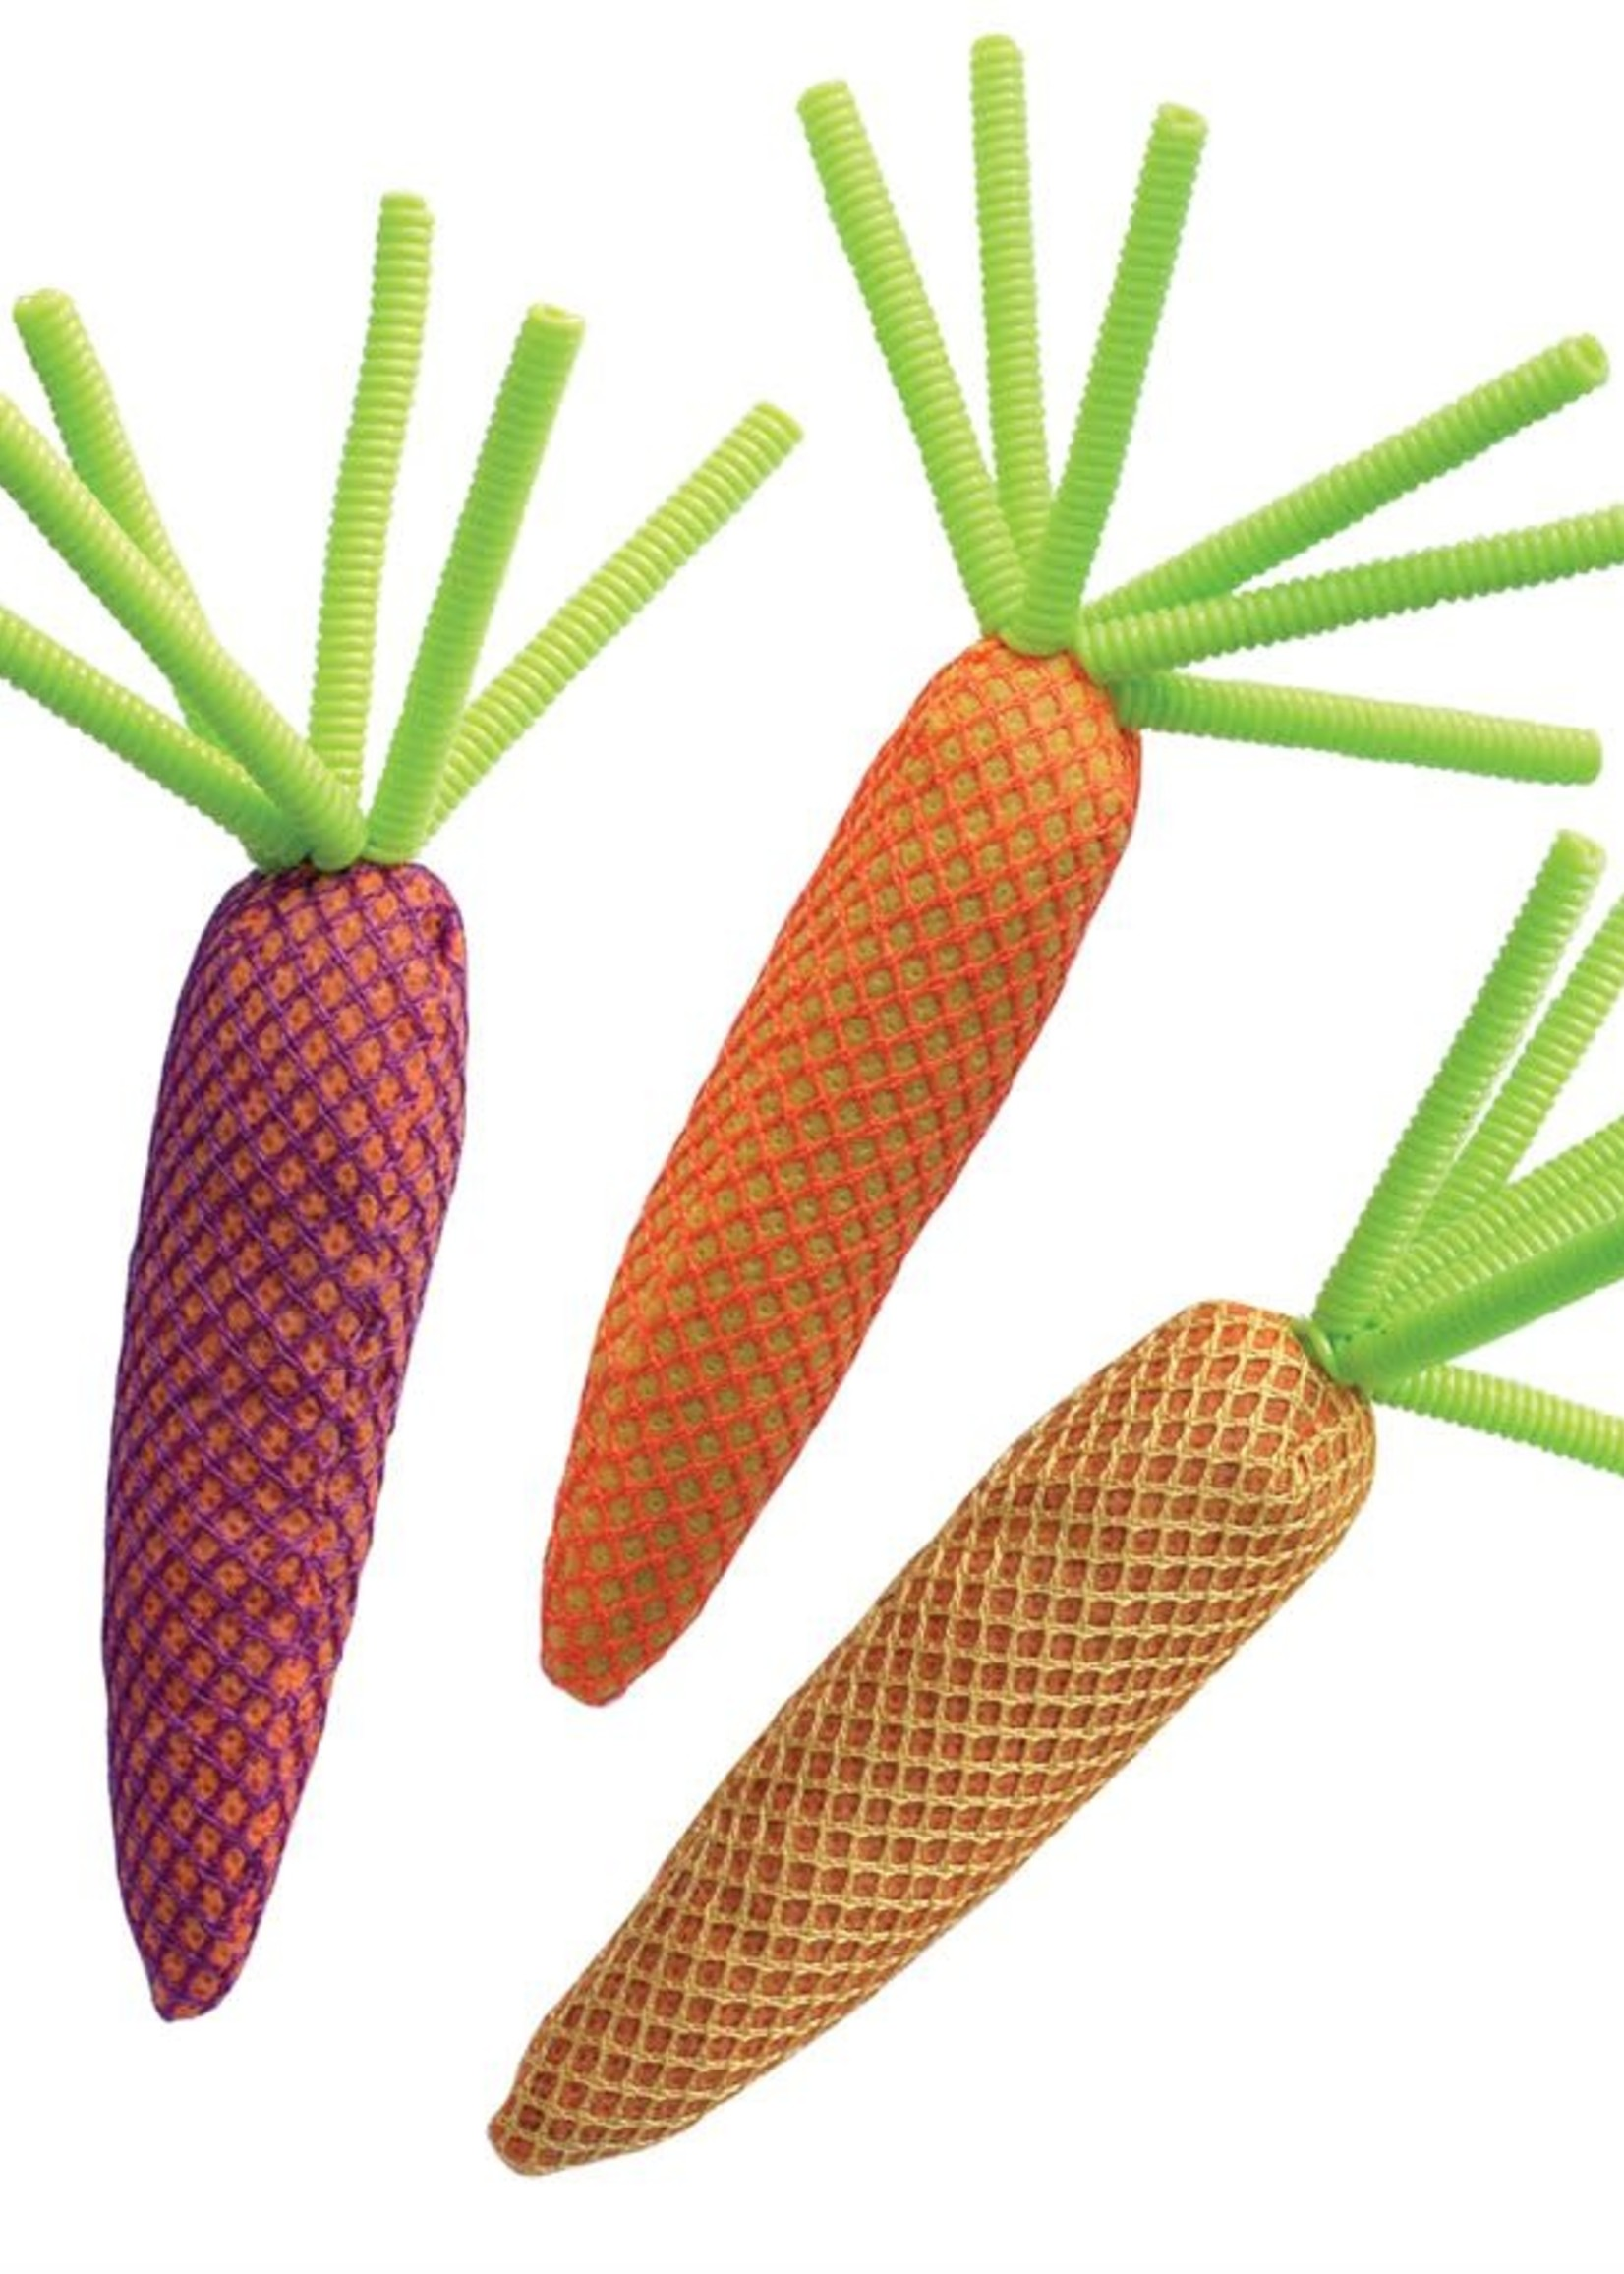 Kong® Kong® Nibble Carrot with Catnip - Assorted